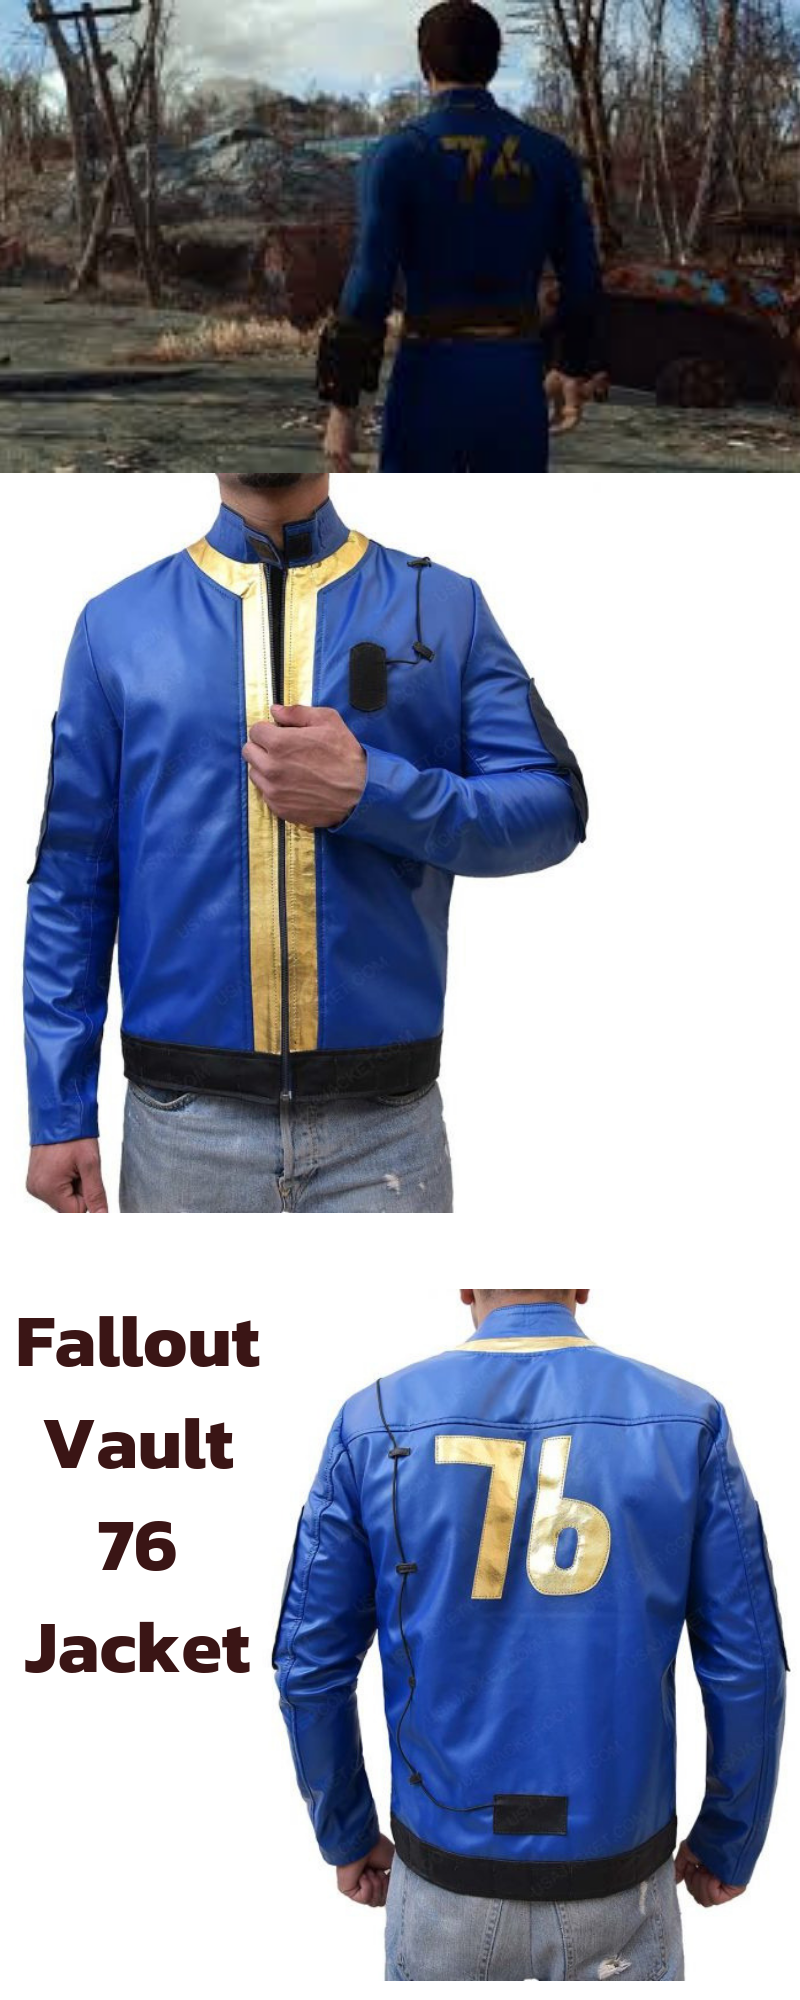 Video Game Fallout 76 Blue Leather Jacket | Crawl out through the